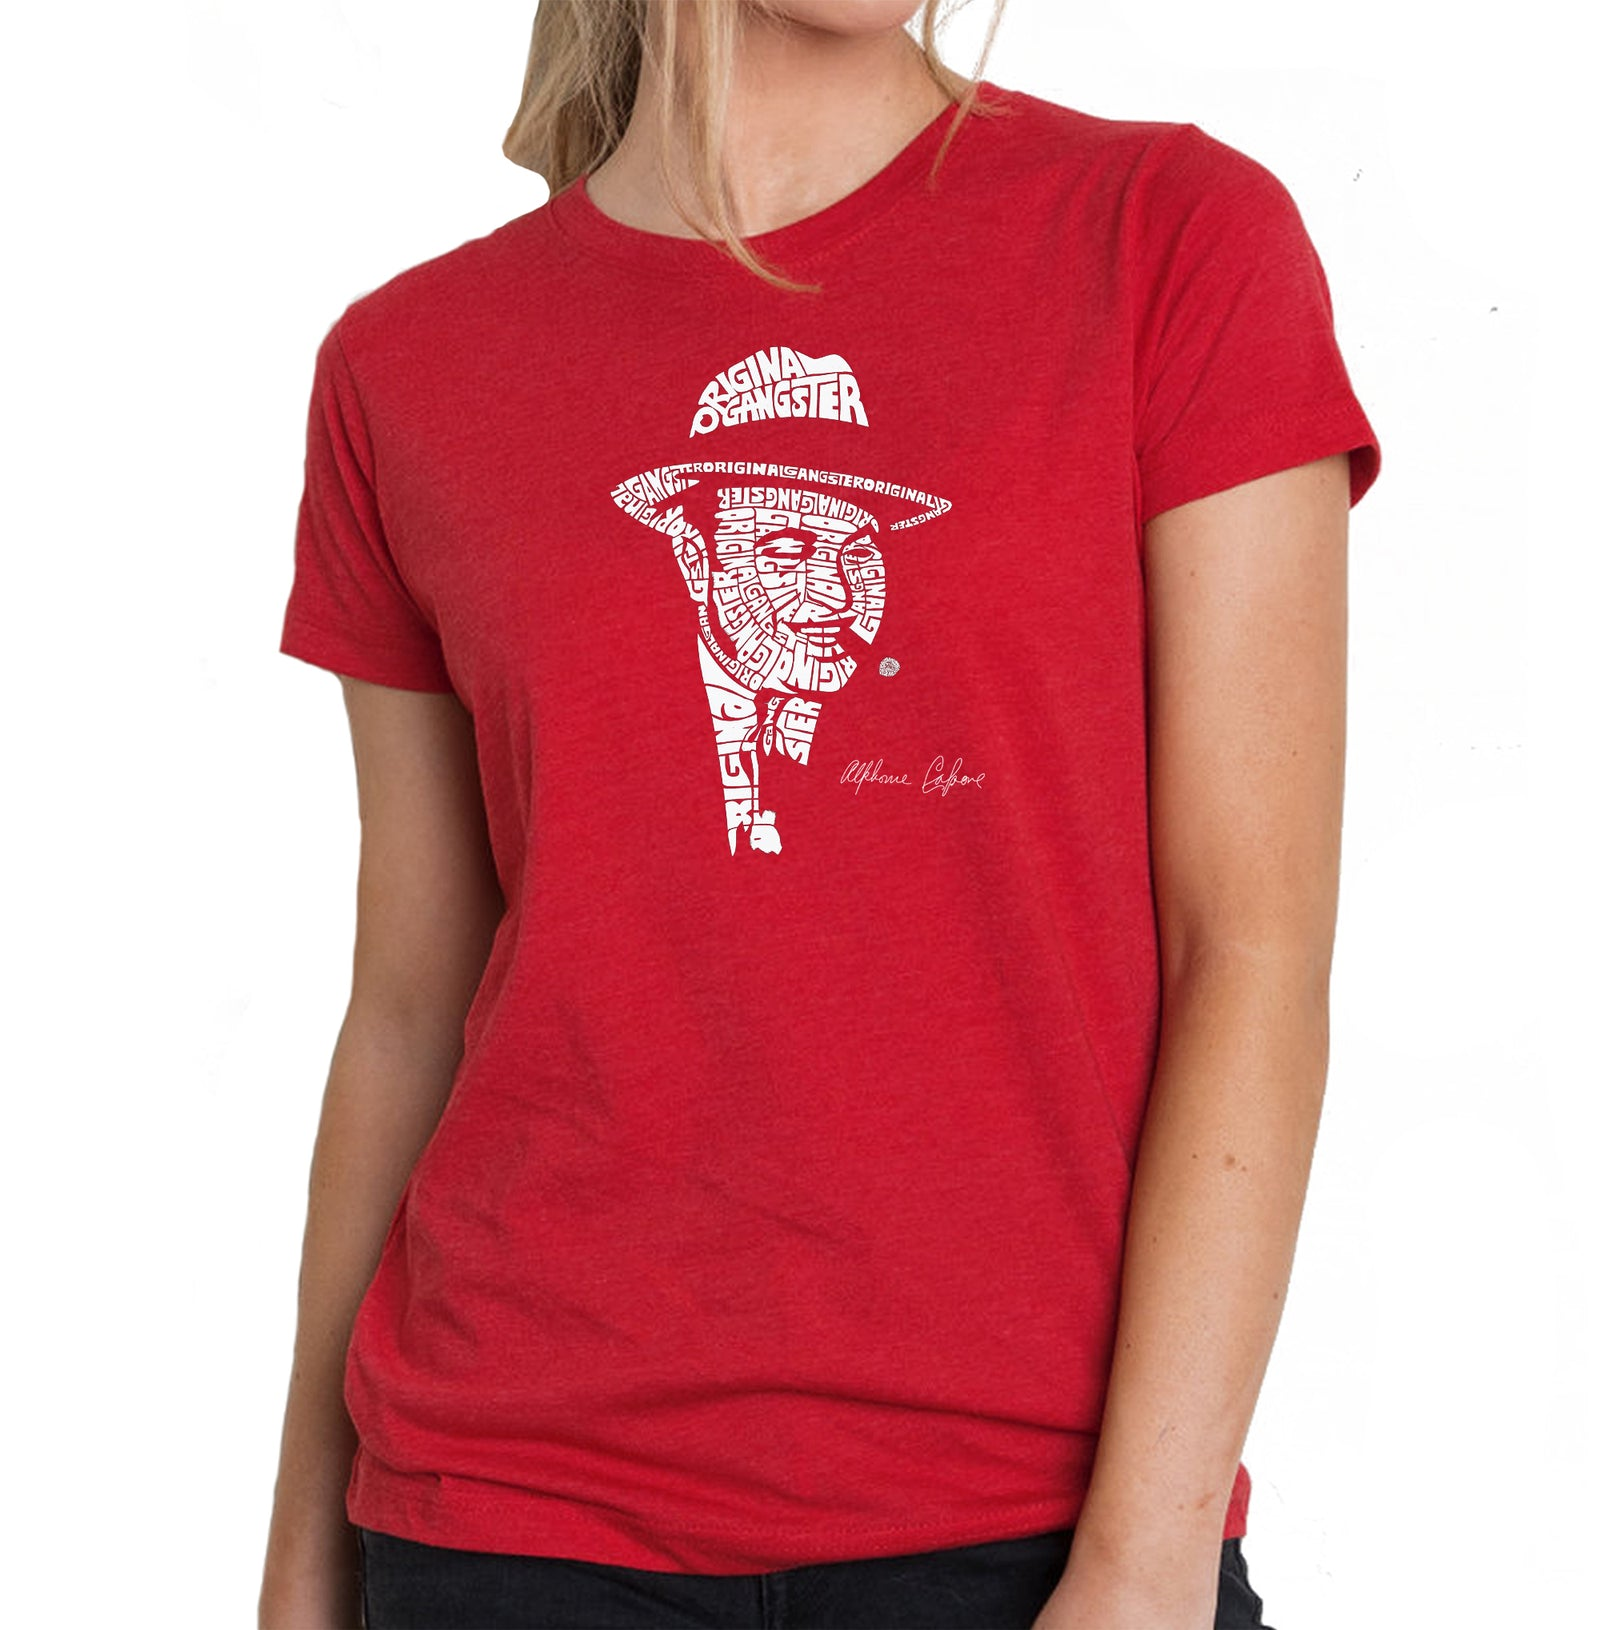 Women's Premium Blend Word Art T-shirt - AL CAPONE-ORIGINAL GANGSTER